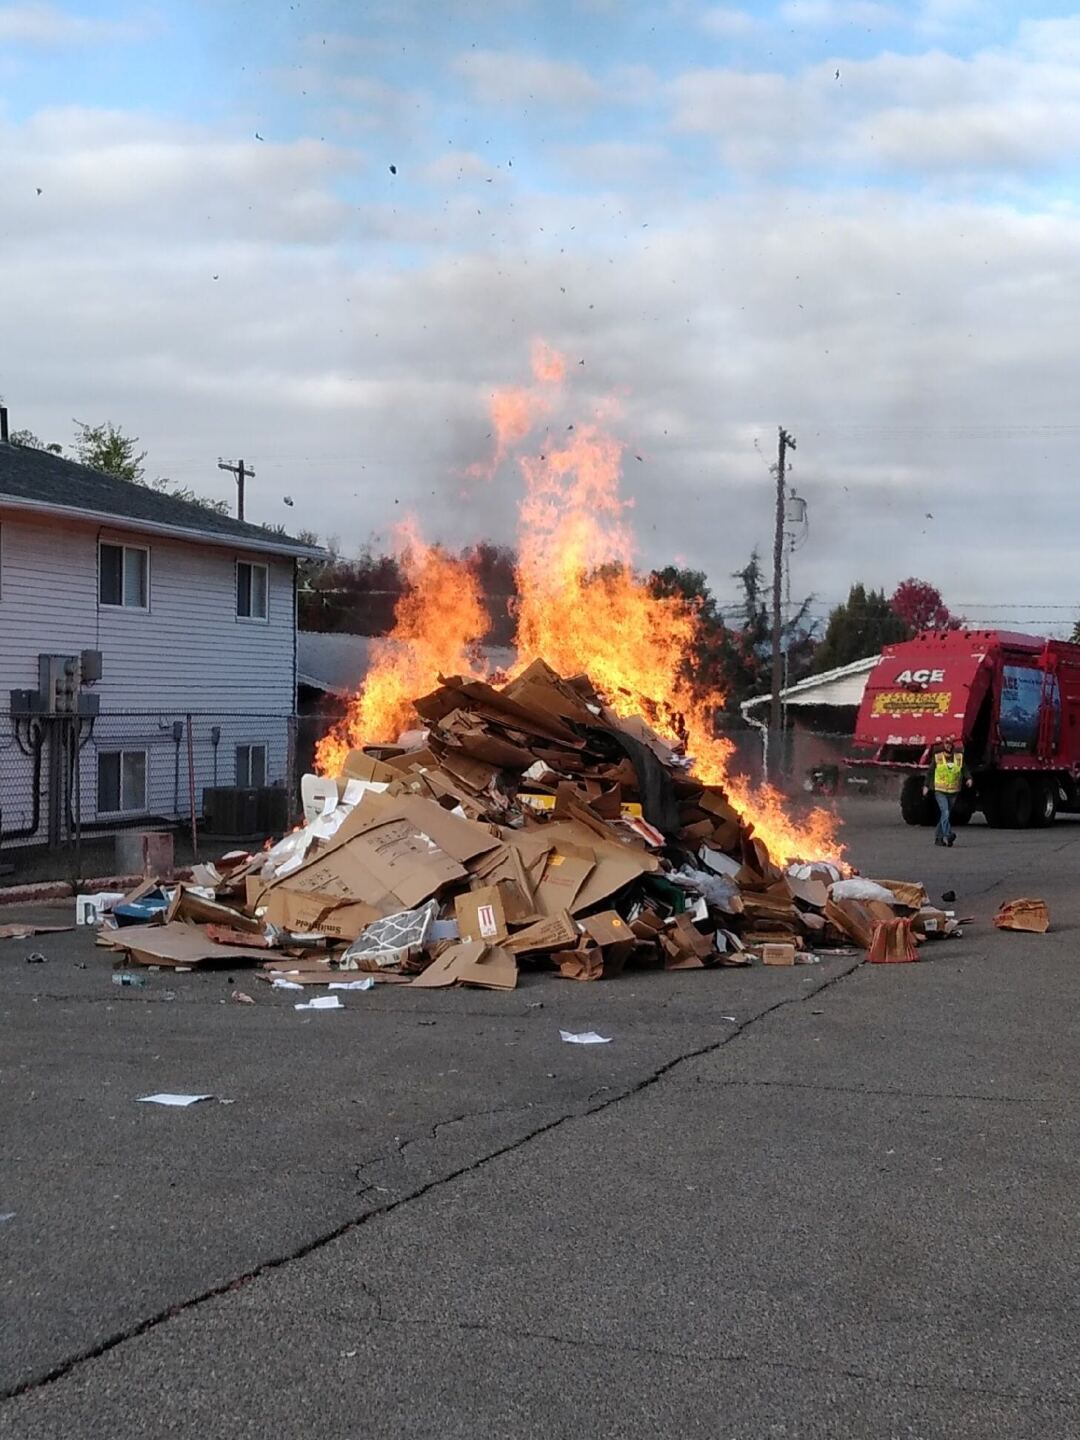 Photos: Literal garbage fire closes road in Salt Lake City